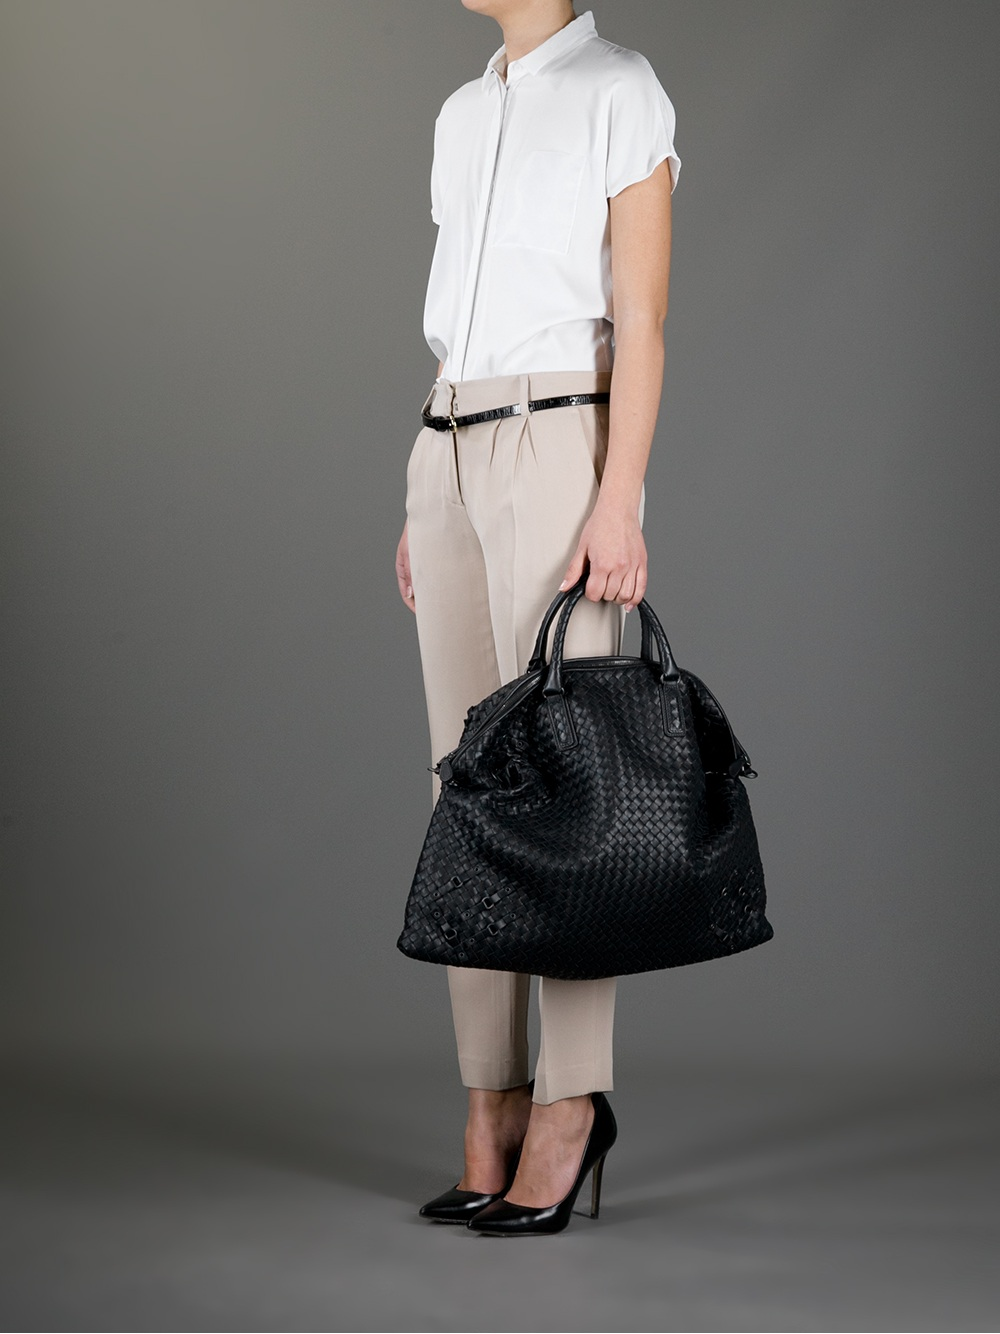 eb55f449fd replica bottega venetta - Bottega veneta Intrecciato Nappa Convertible Bag  in Black